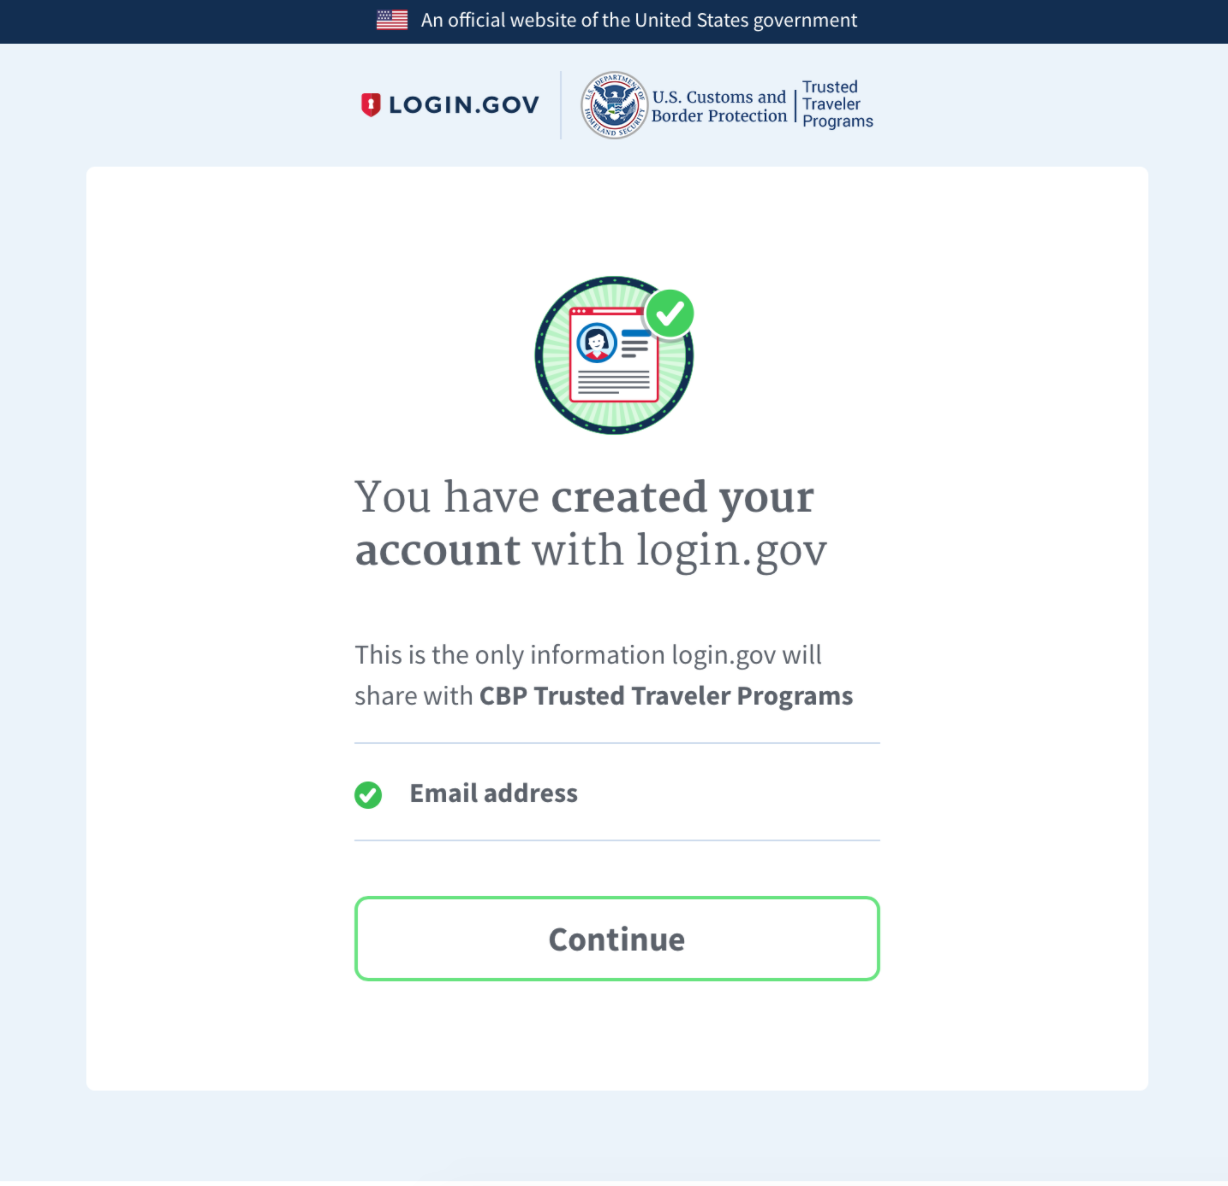 login.gov | i'm trying to sign in, but it doesn't work / i'm trying